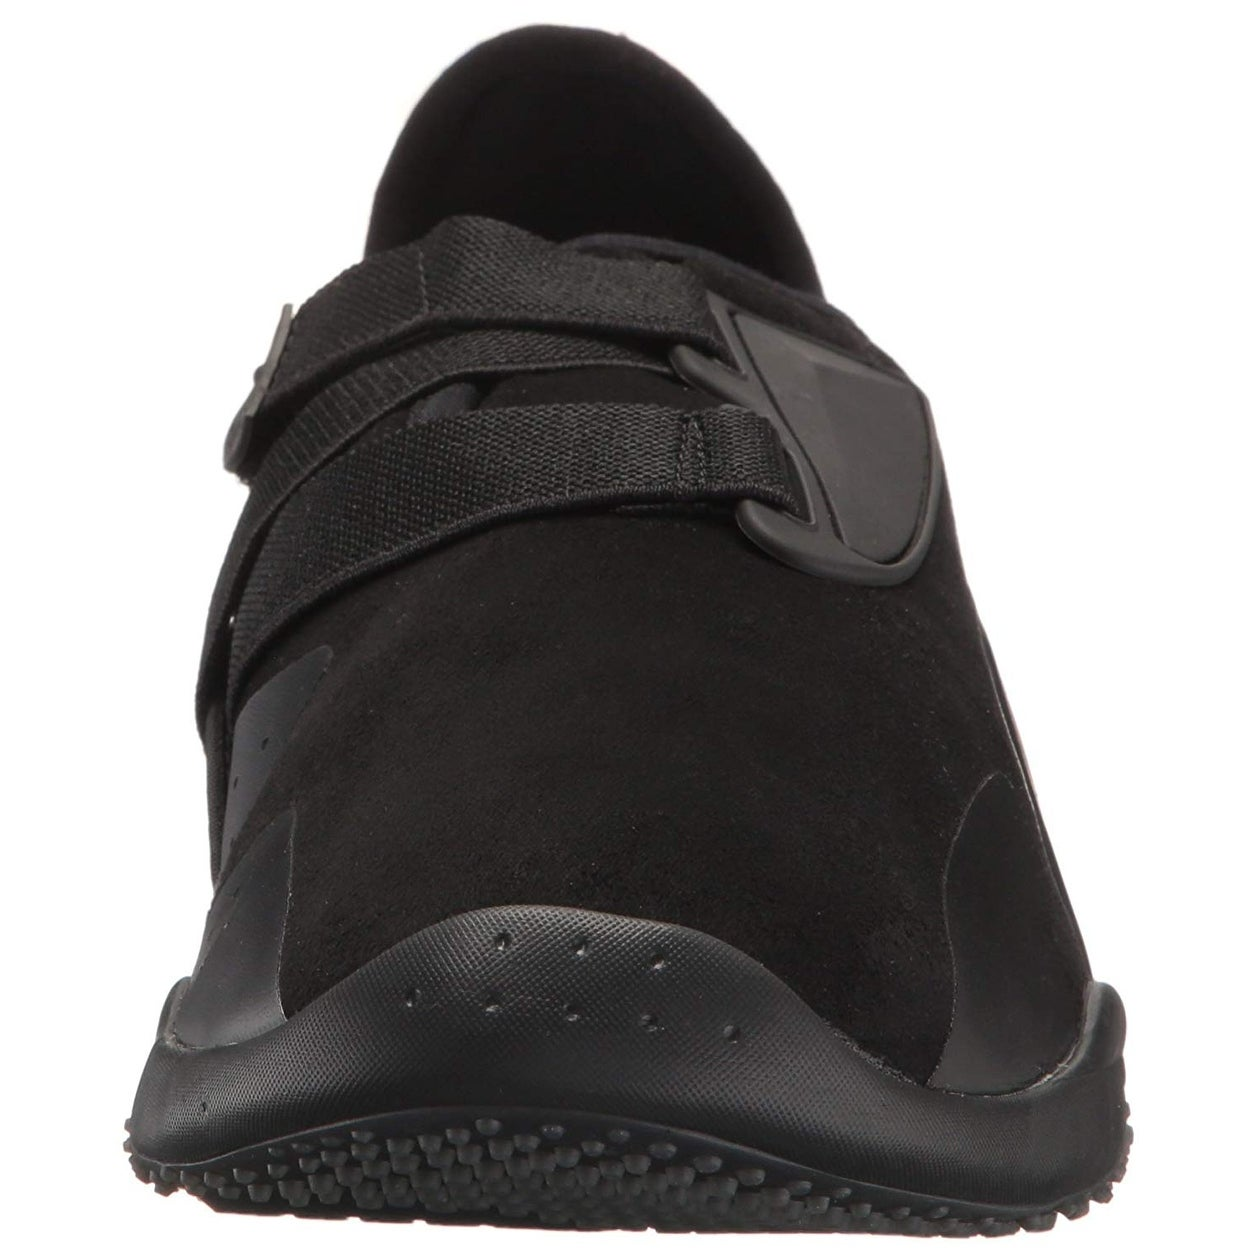 ca54d914b417 Shop PUMA Mostro Hypernature Sneaker - Free Shipping Today - Overstock -  24305939